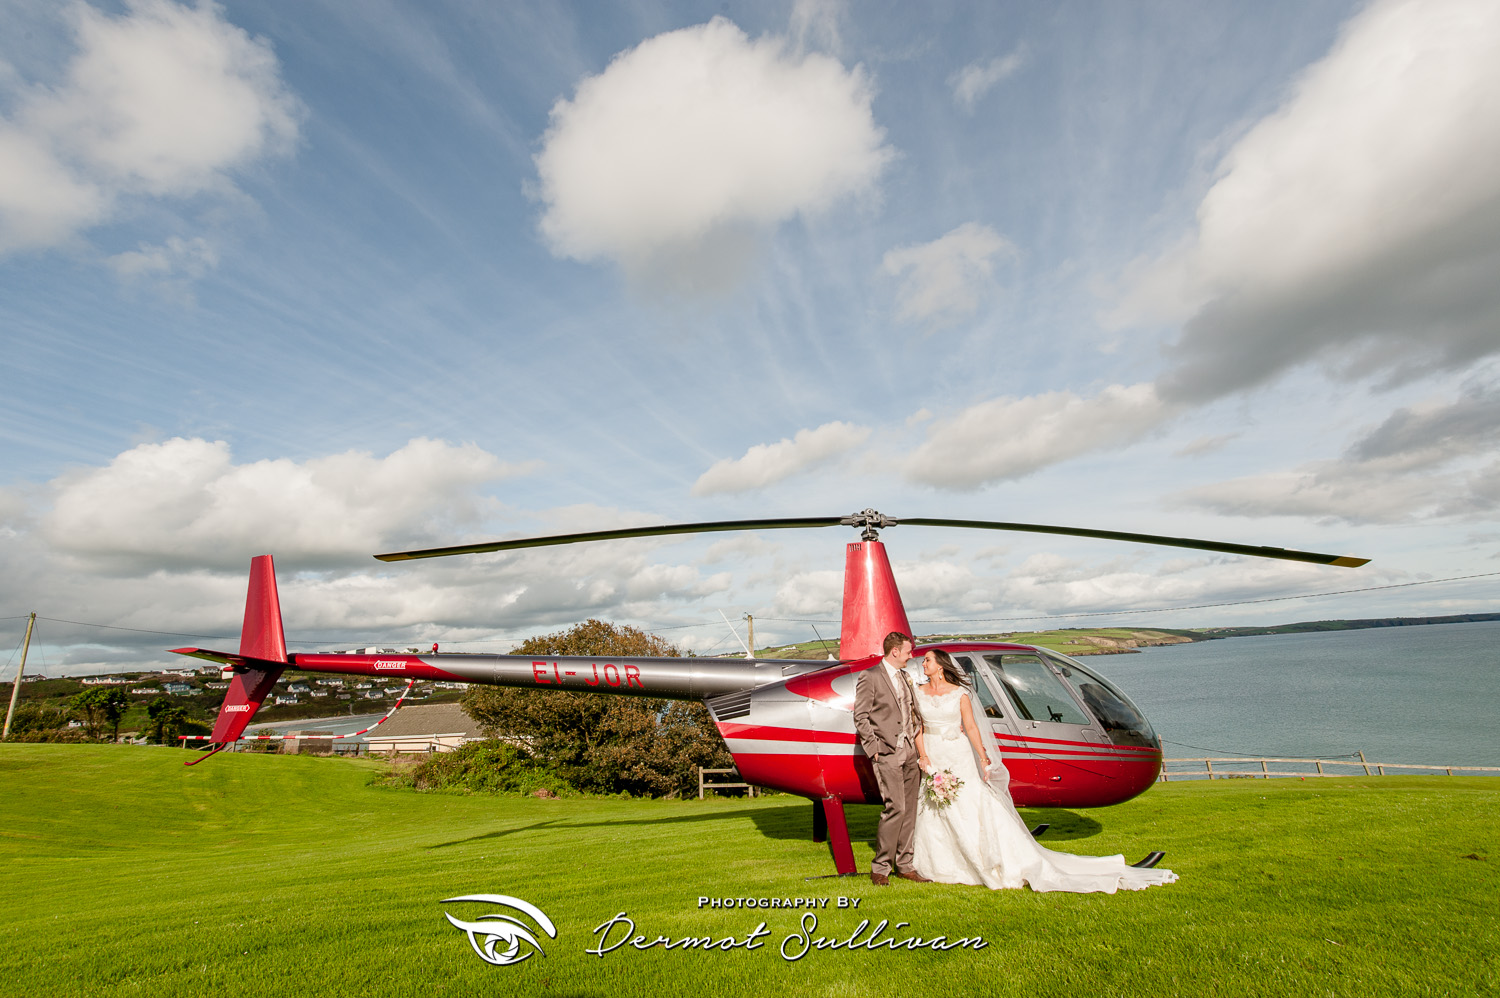 Dunmore House Clonakilty Wedding Photos, Dermot Sullivan, Cork Wedding Photographer, Wedding Photography Cork, Award Winning Wedding Photography, West Cork Wedding Photography, Cork Wedding Photos, Clonakilty Wedding Photographer, Best Prices, Packages, Pictures, Best Wedding Photos,